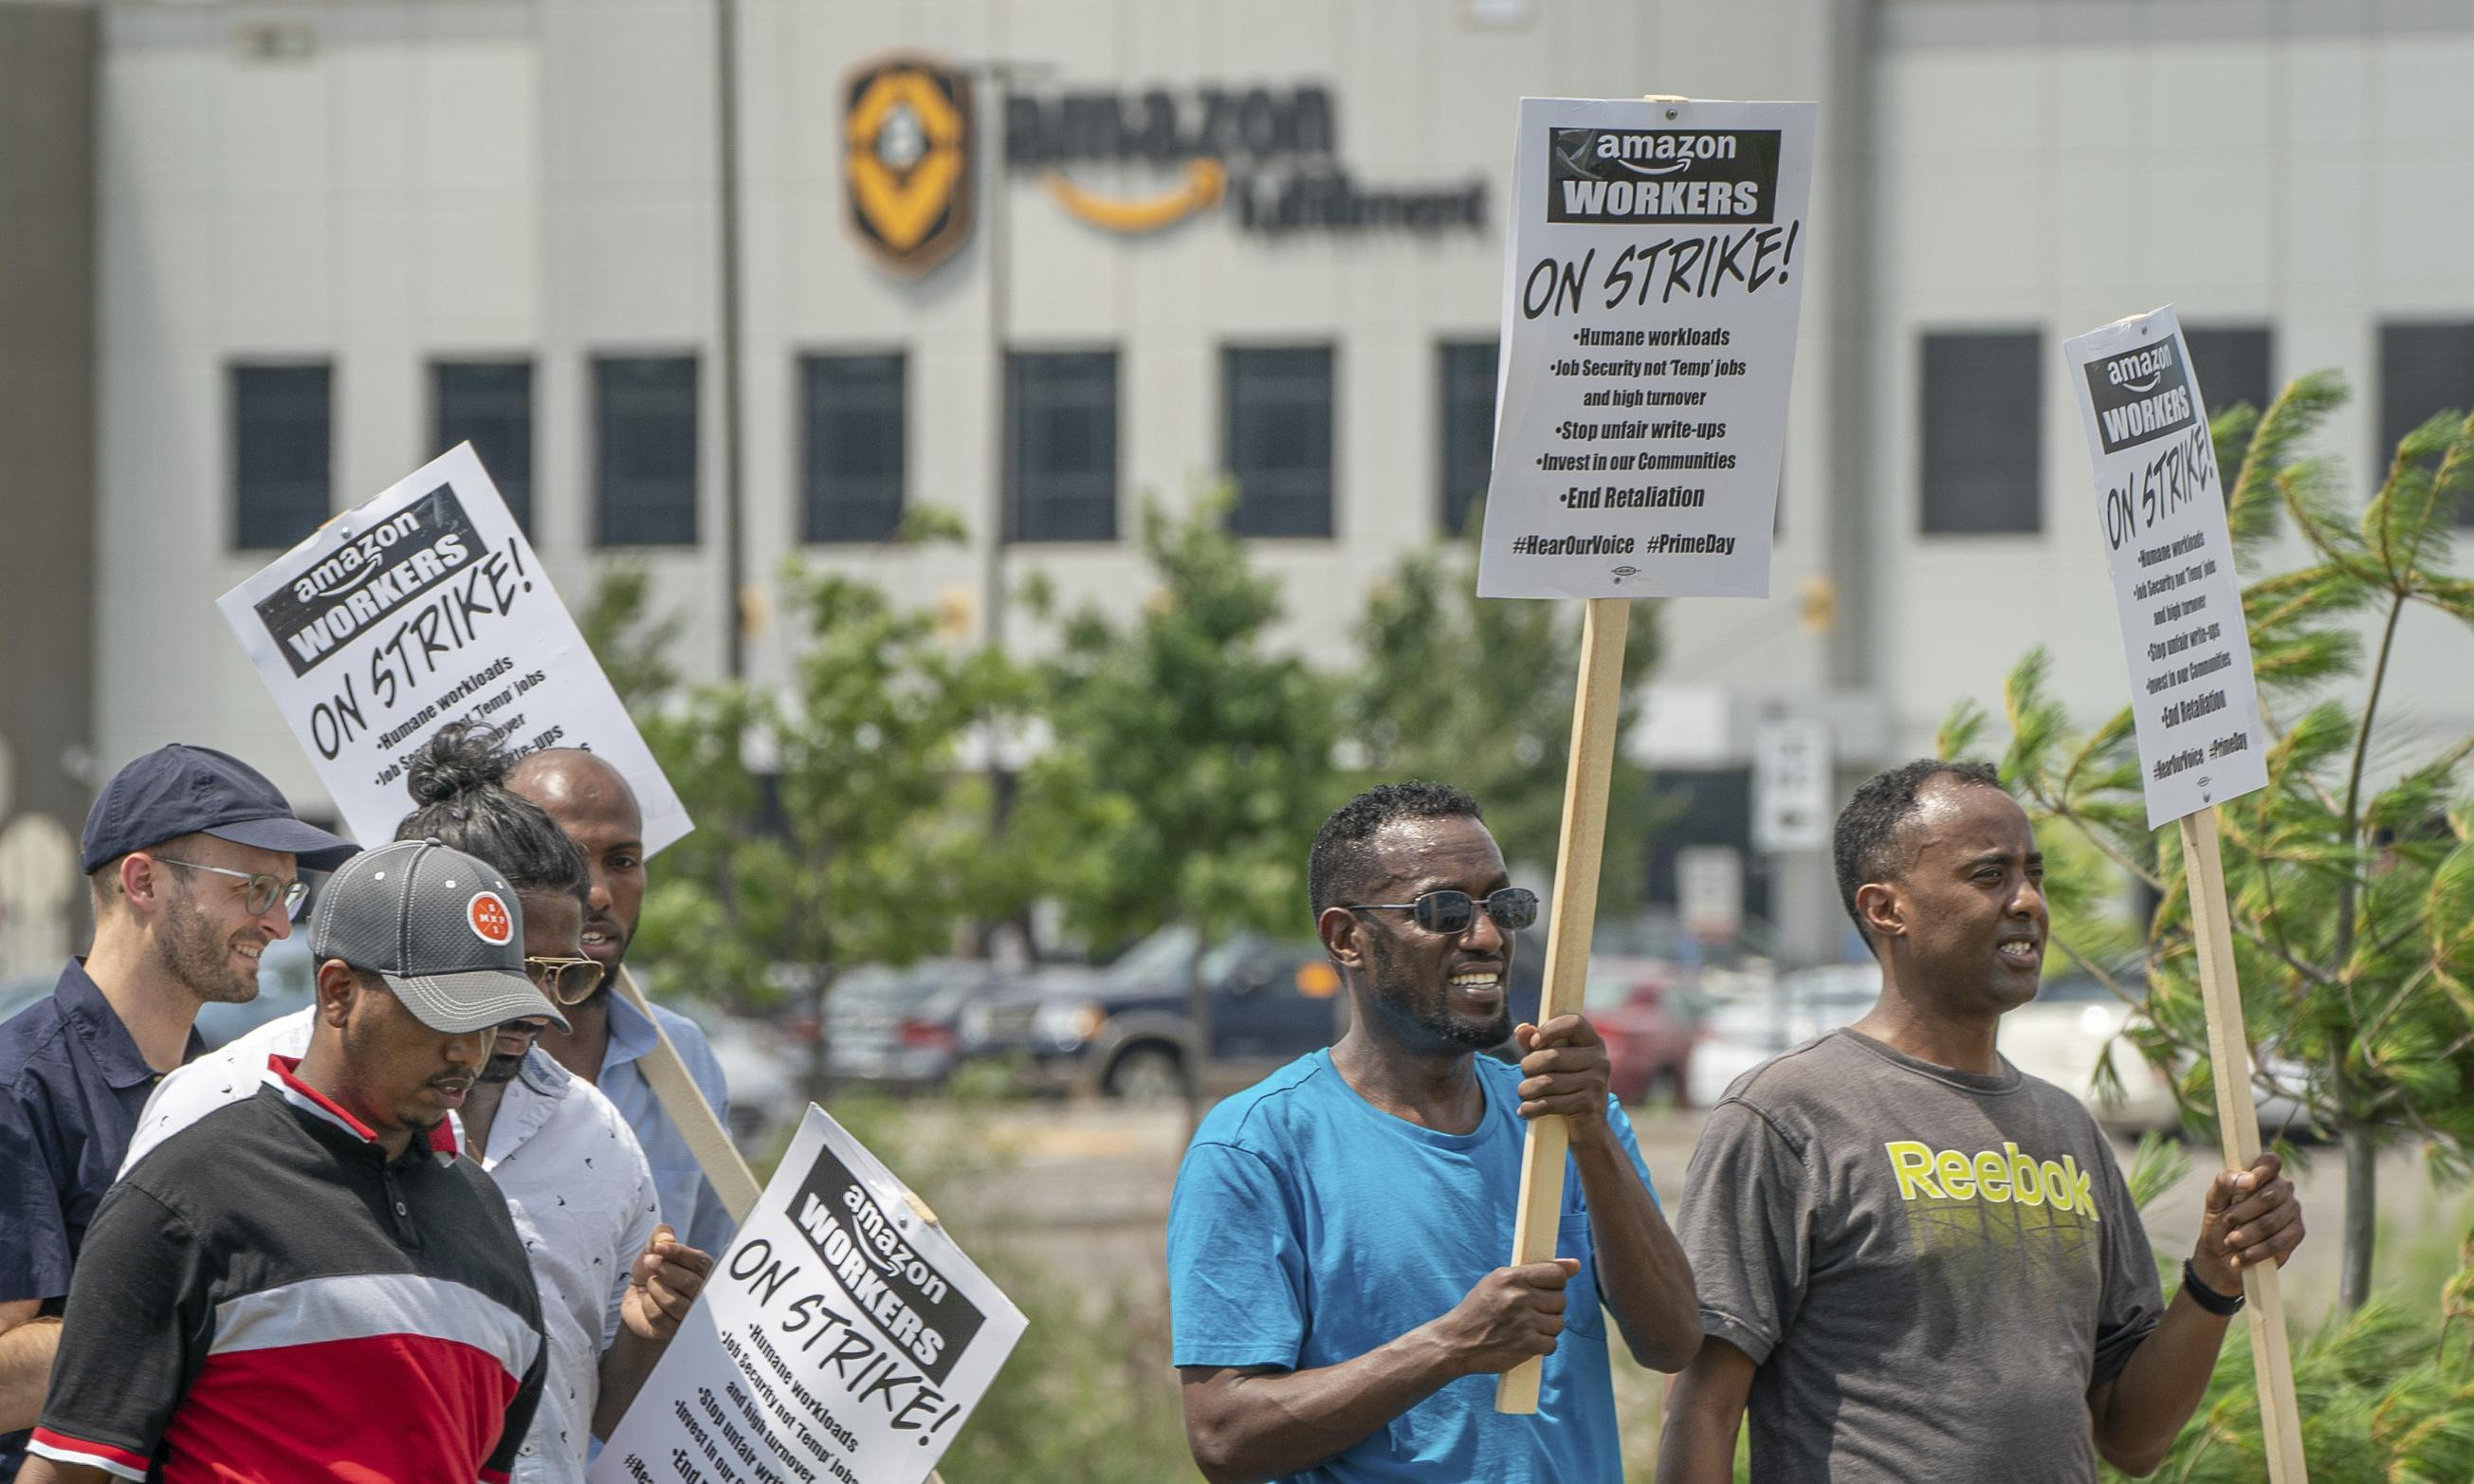 Amazon employees in Minneapolis are fighting for better conditions. And it's working